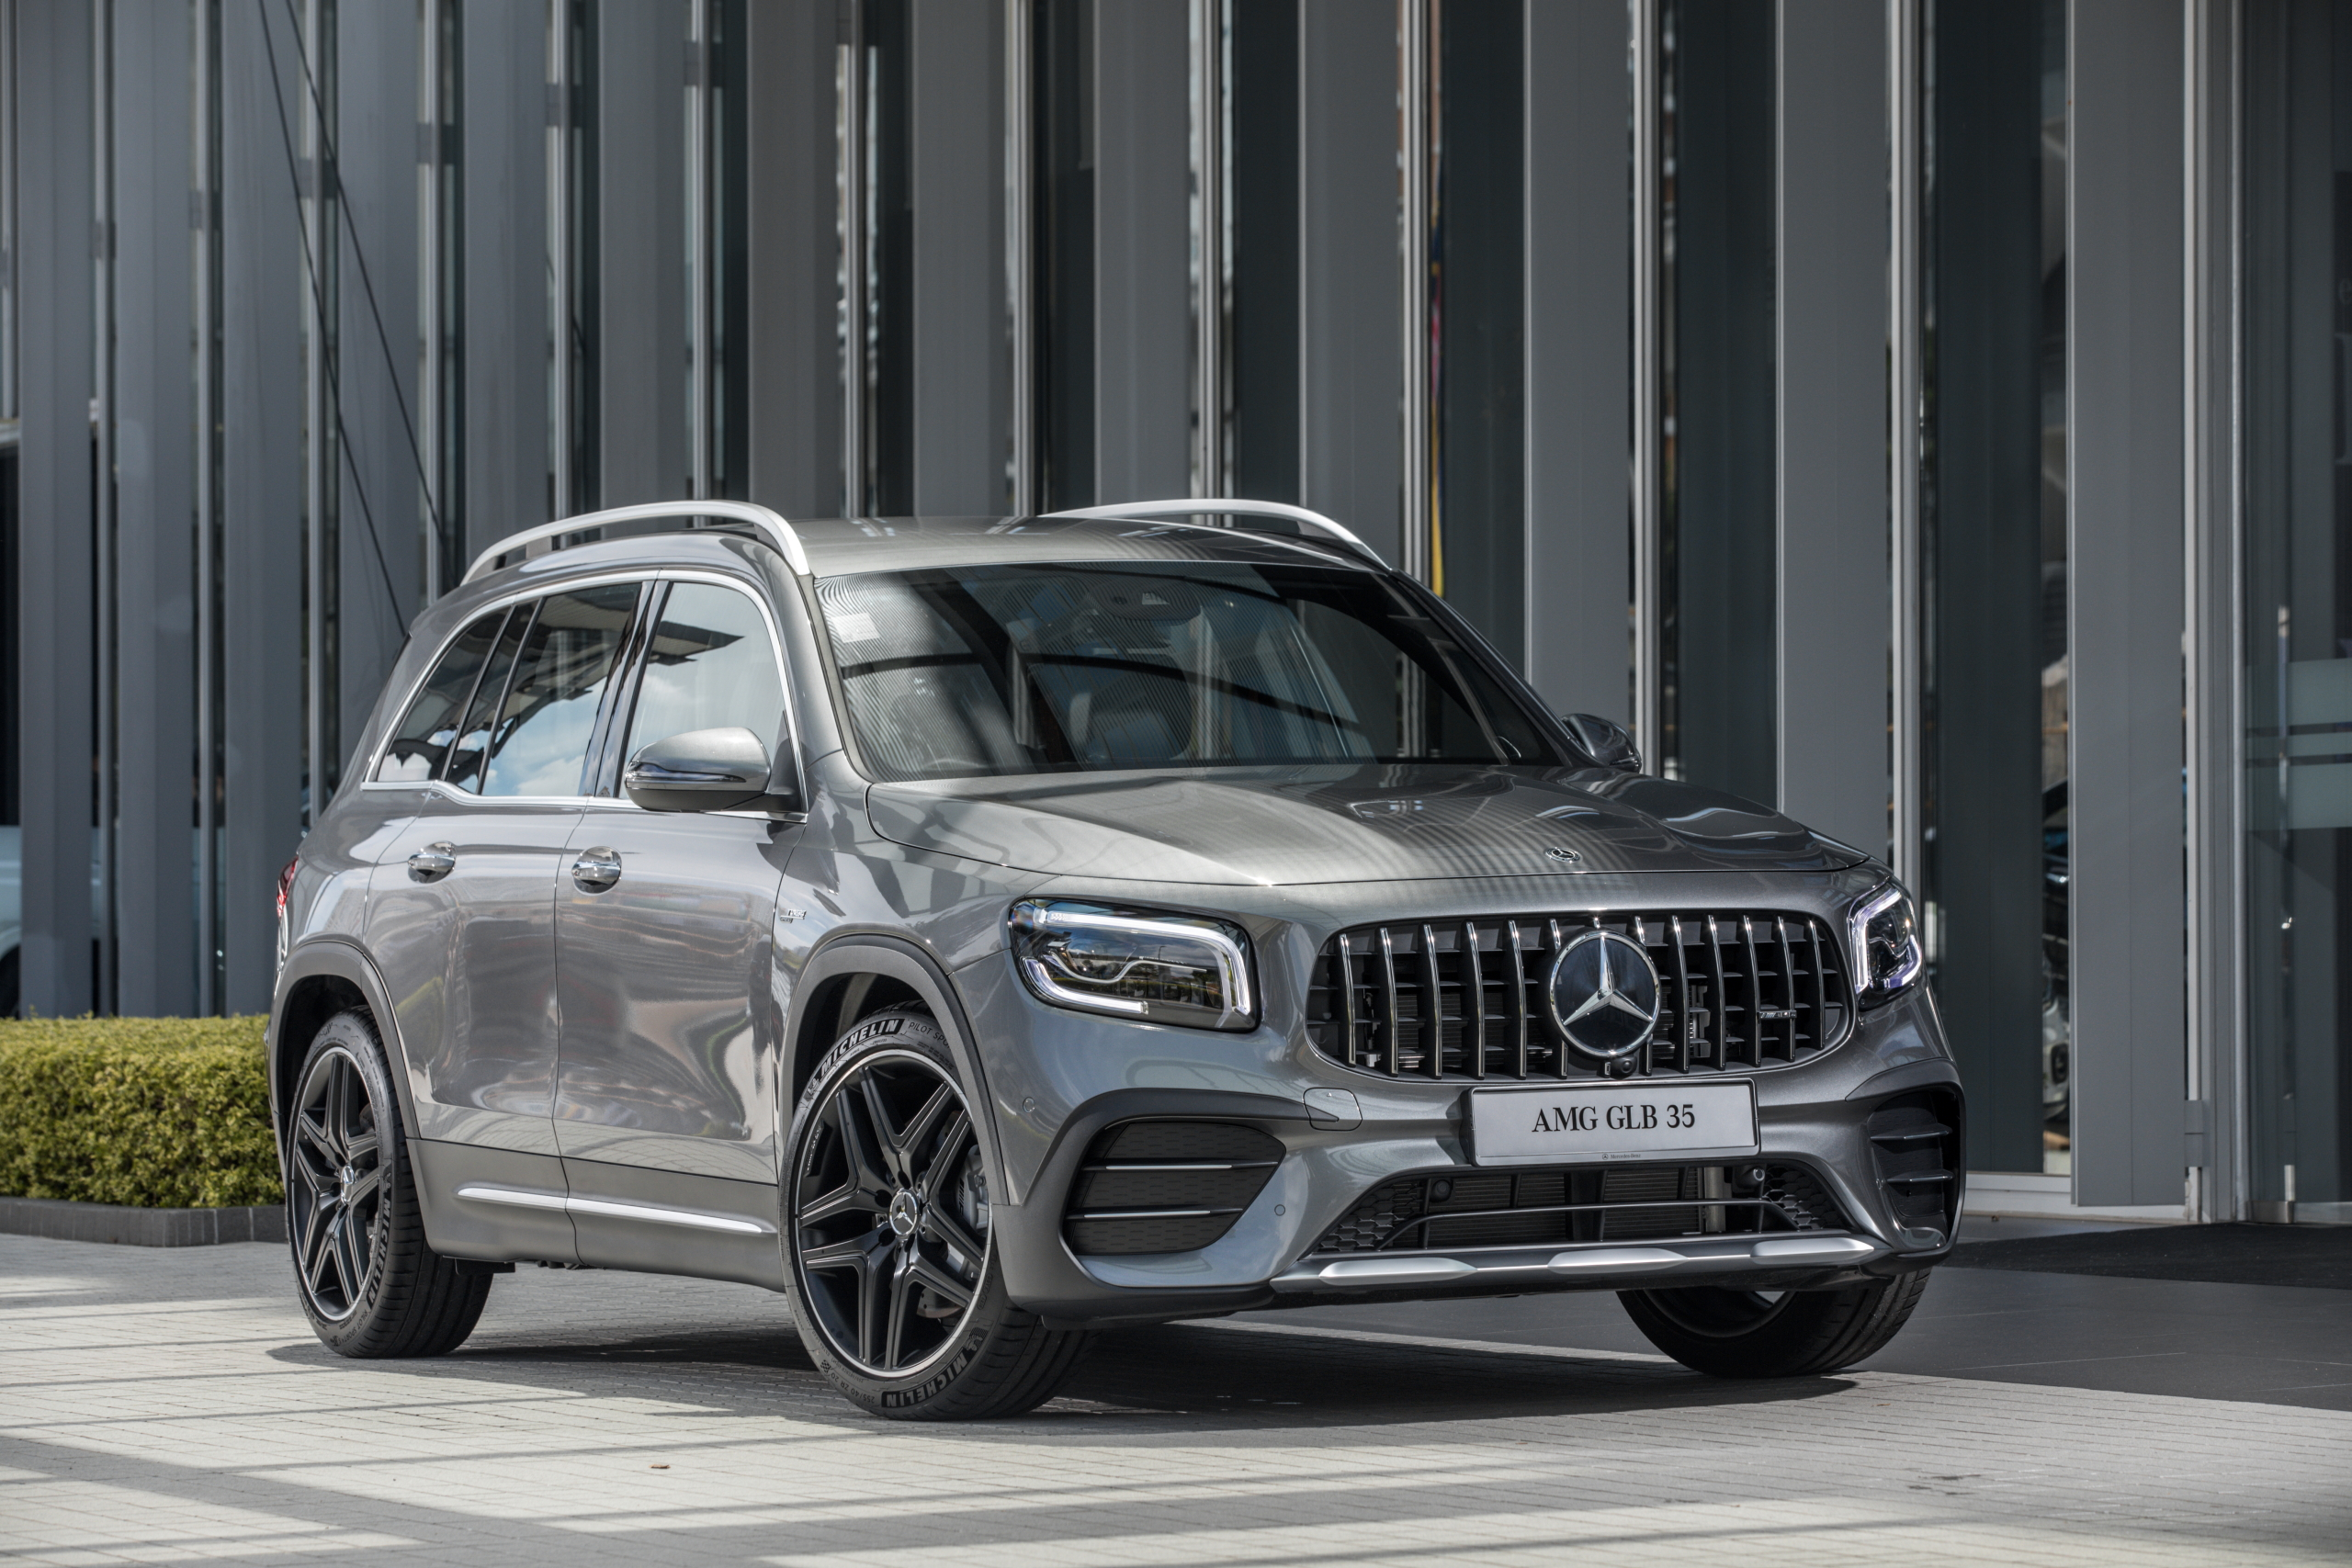 The Mercedes GLB Is An SUV That Stays True To Its Class